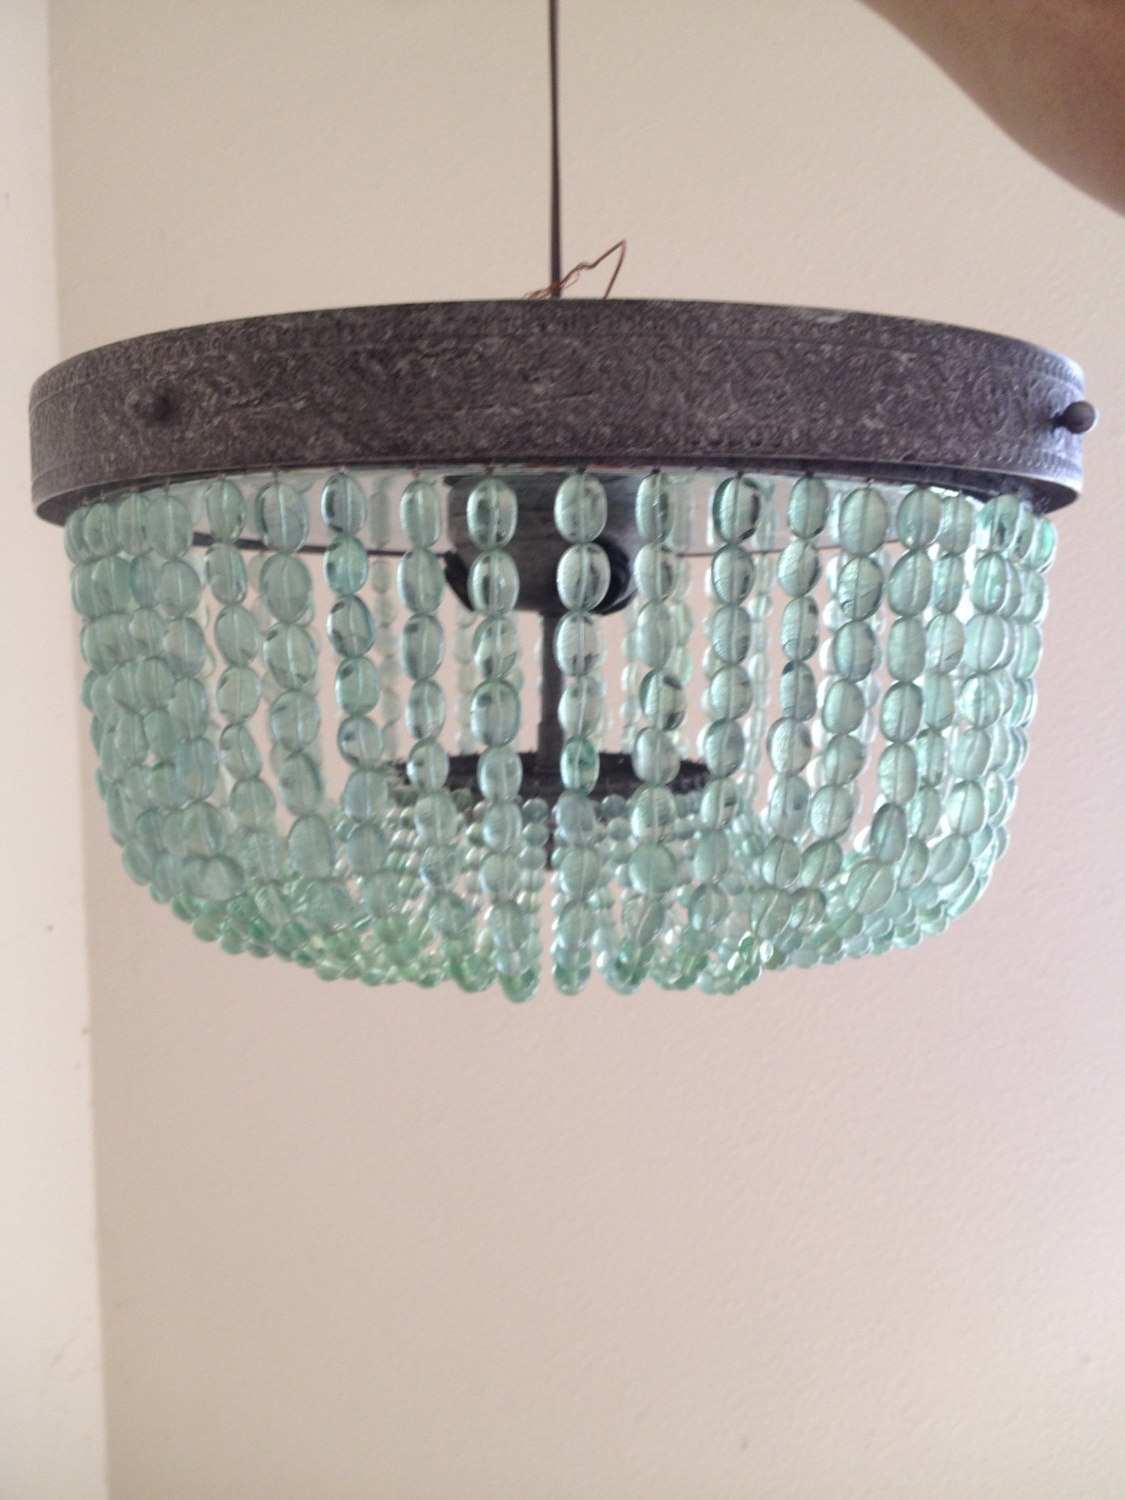 2019 Turquoise Beaded Chandelier Light Fixtures Pertaining To Aqua (Light Turquoise, Green) Vintage Style Beaded Chandelier (View 2 of 20)